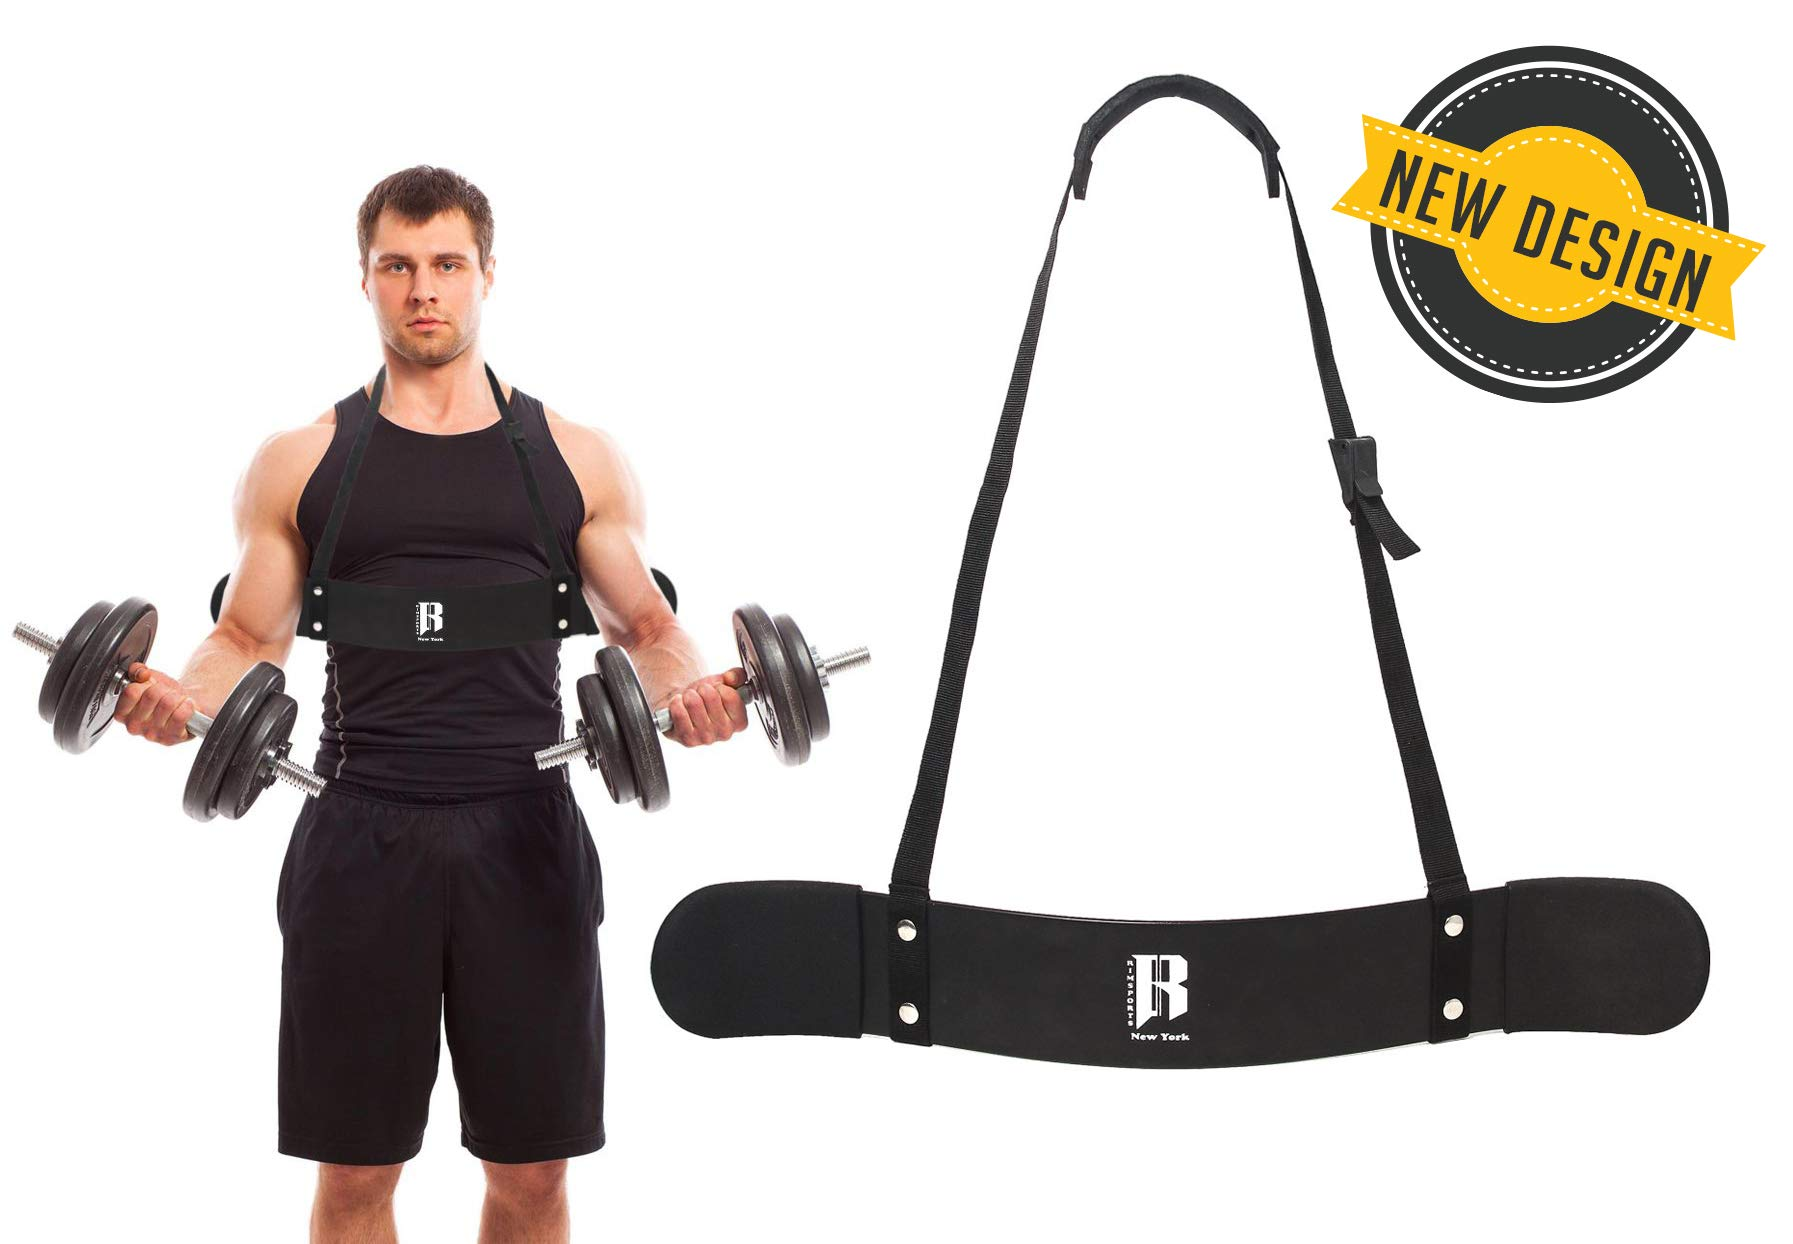 Arm Blaster For Biceps Support - Arm Blaster Bicep Curl with Thick Gauge Aluminum - Add-On To Your Gym Supplies For Biceps Isolator or Preacher Curl - Bicep Curl Bar For Bodybuilders and Weightlifters